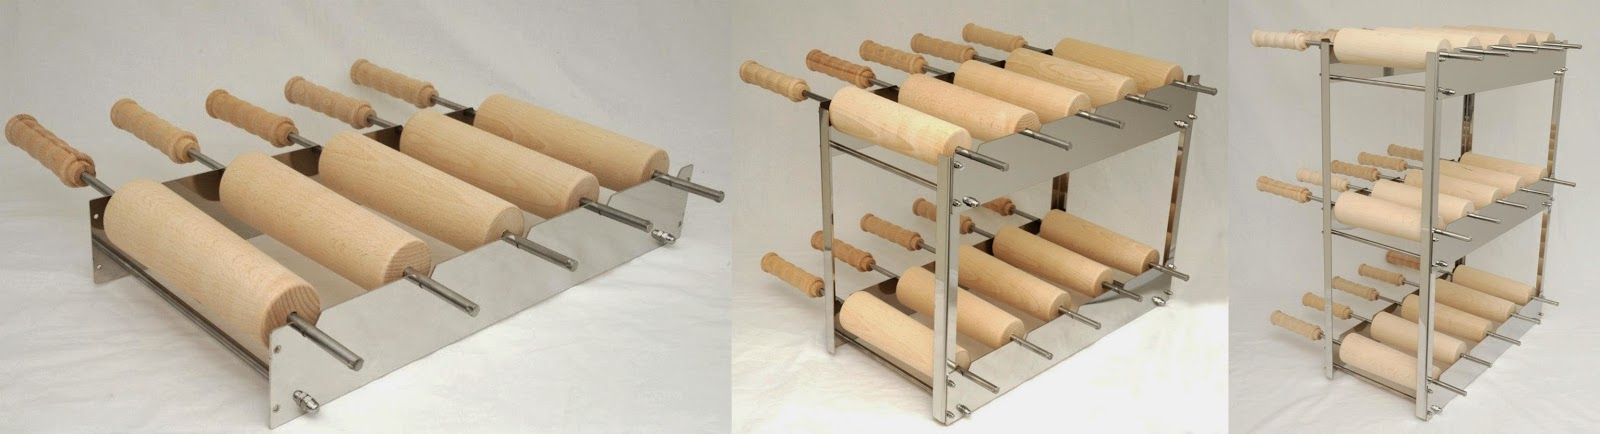 Kurtoskalacs roll racks